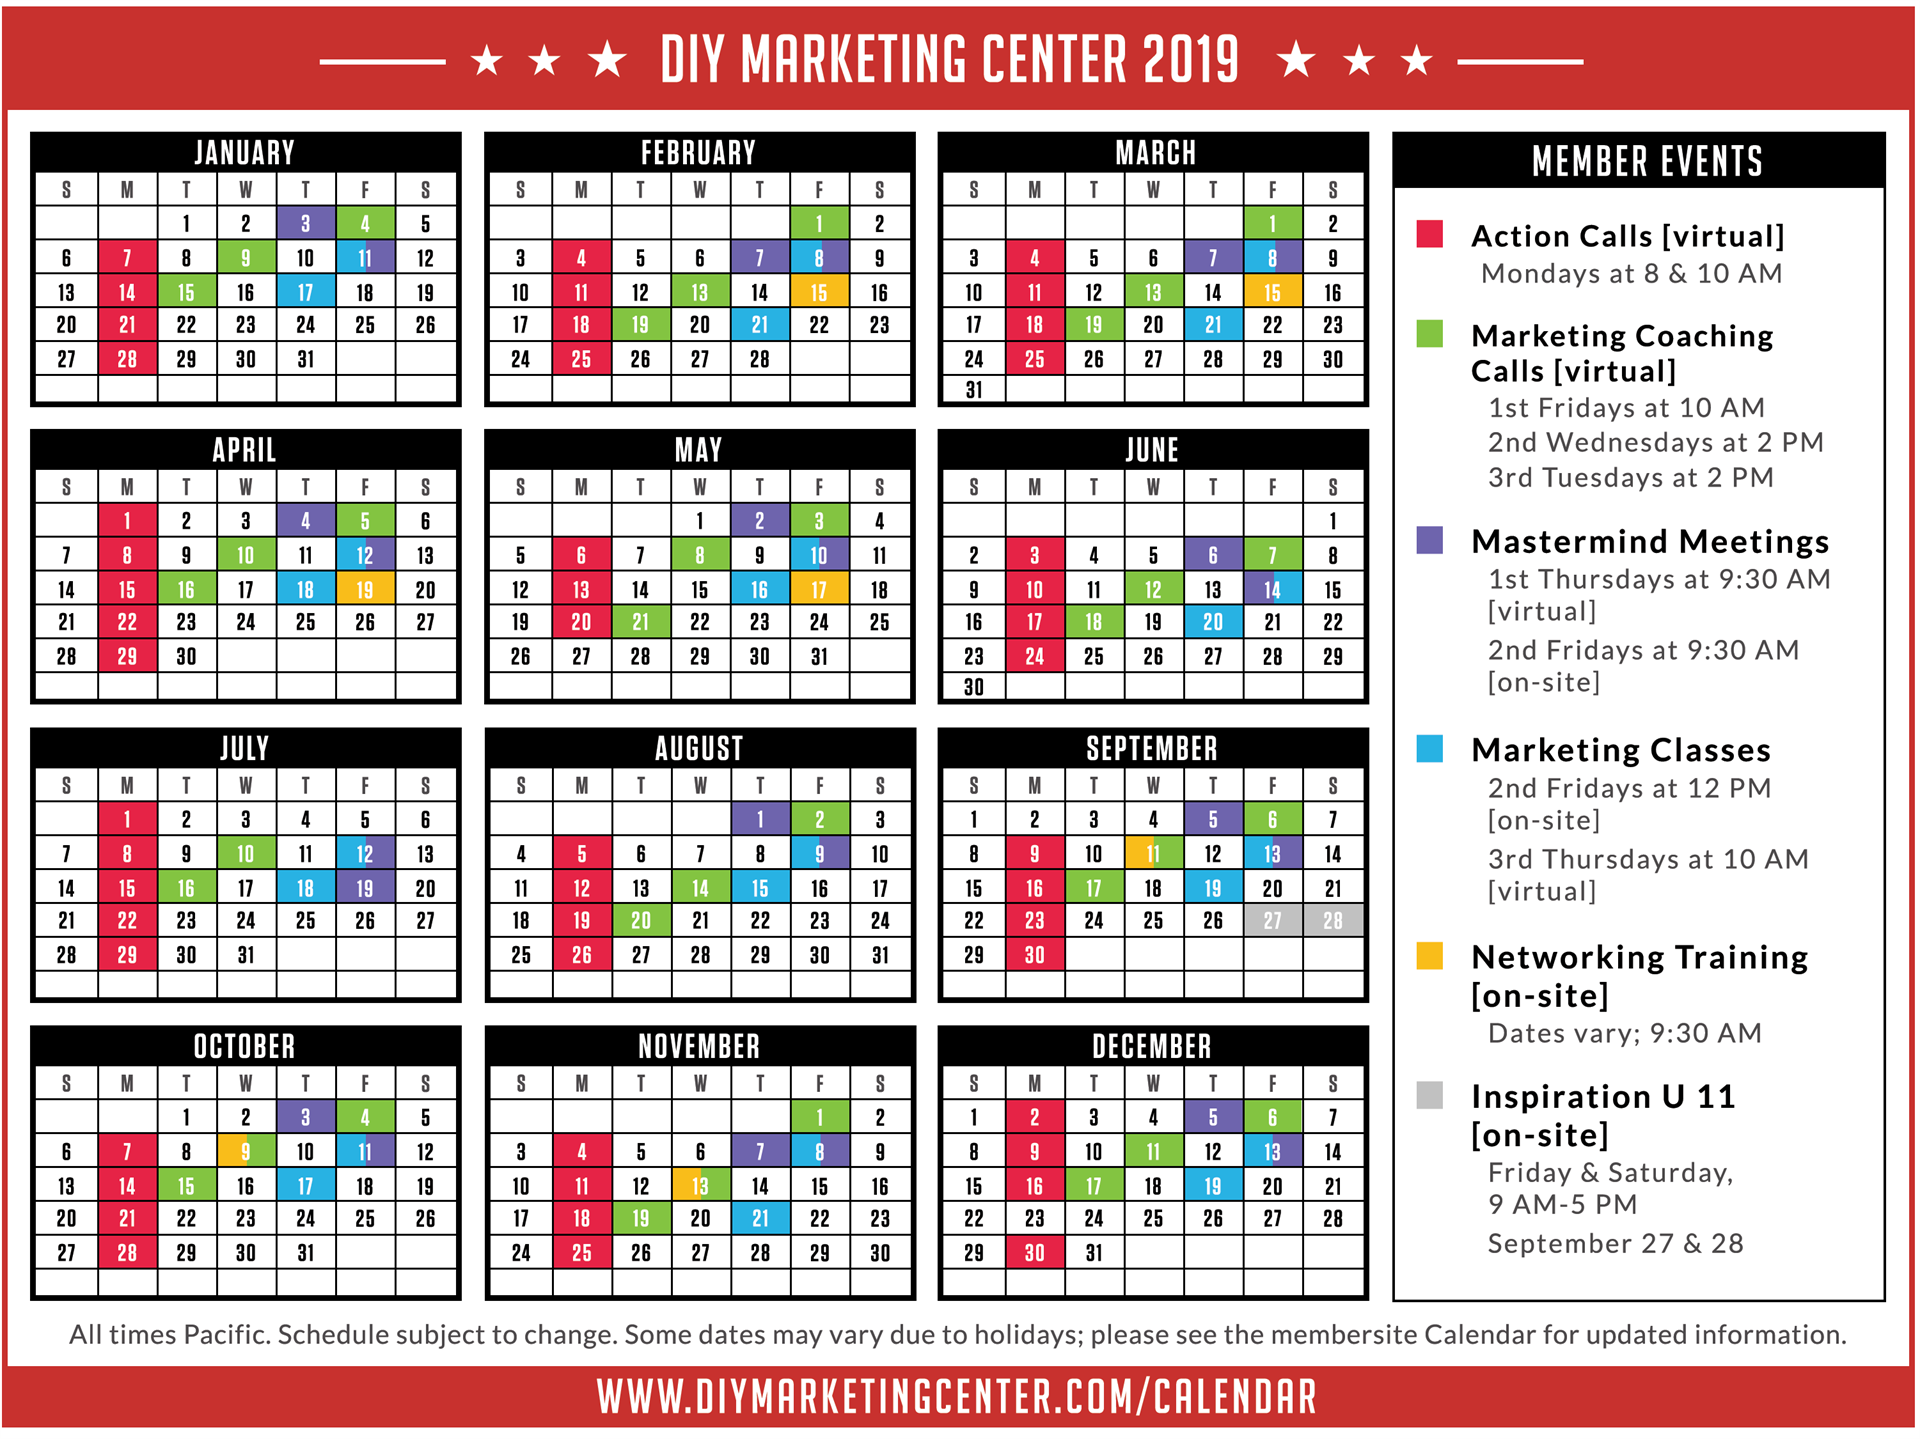 2019 Member Schedule of Events